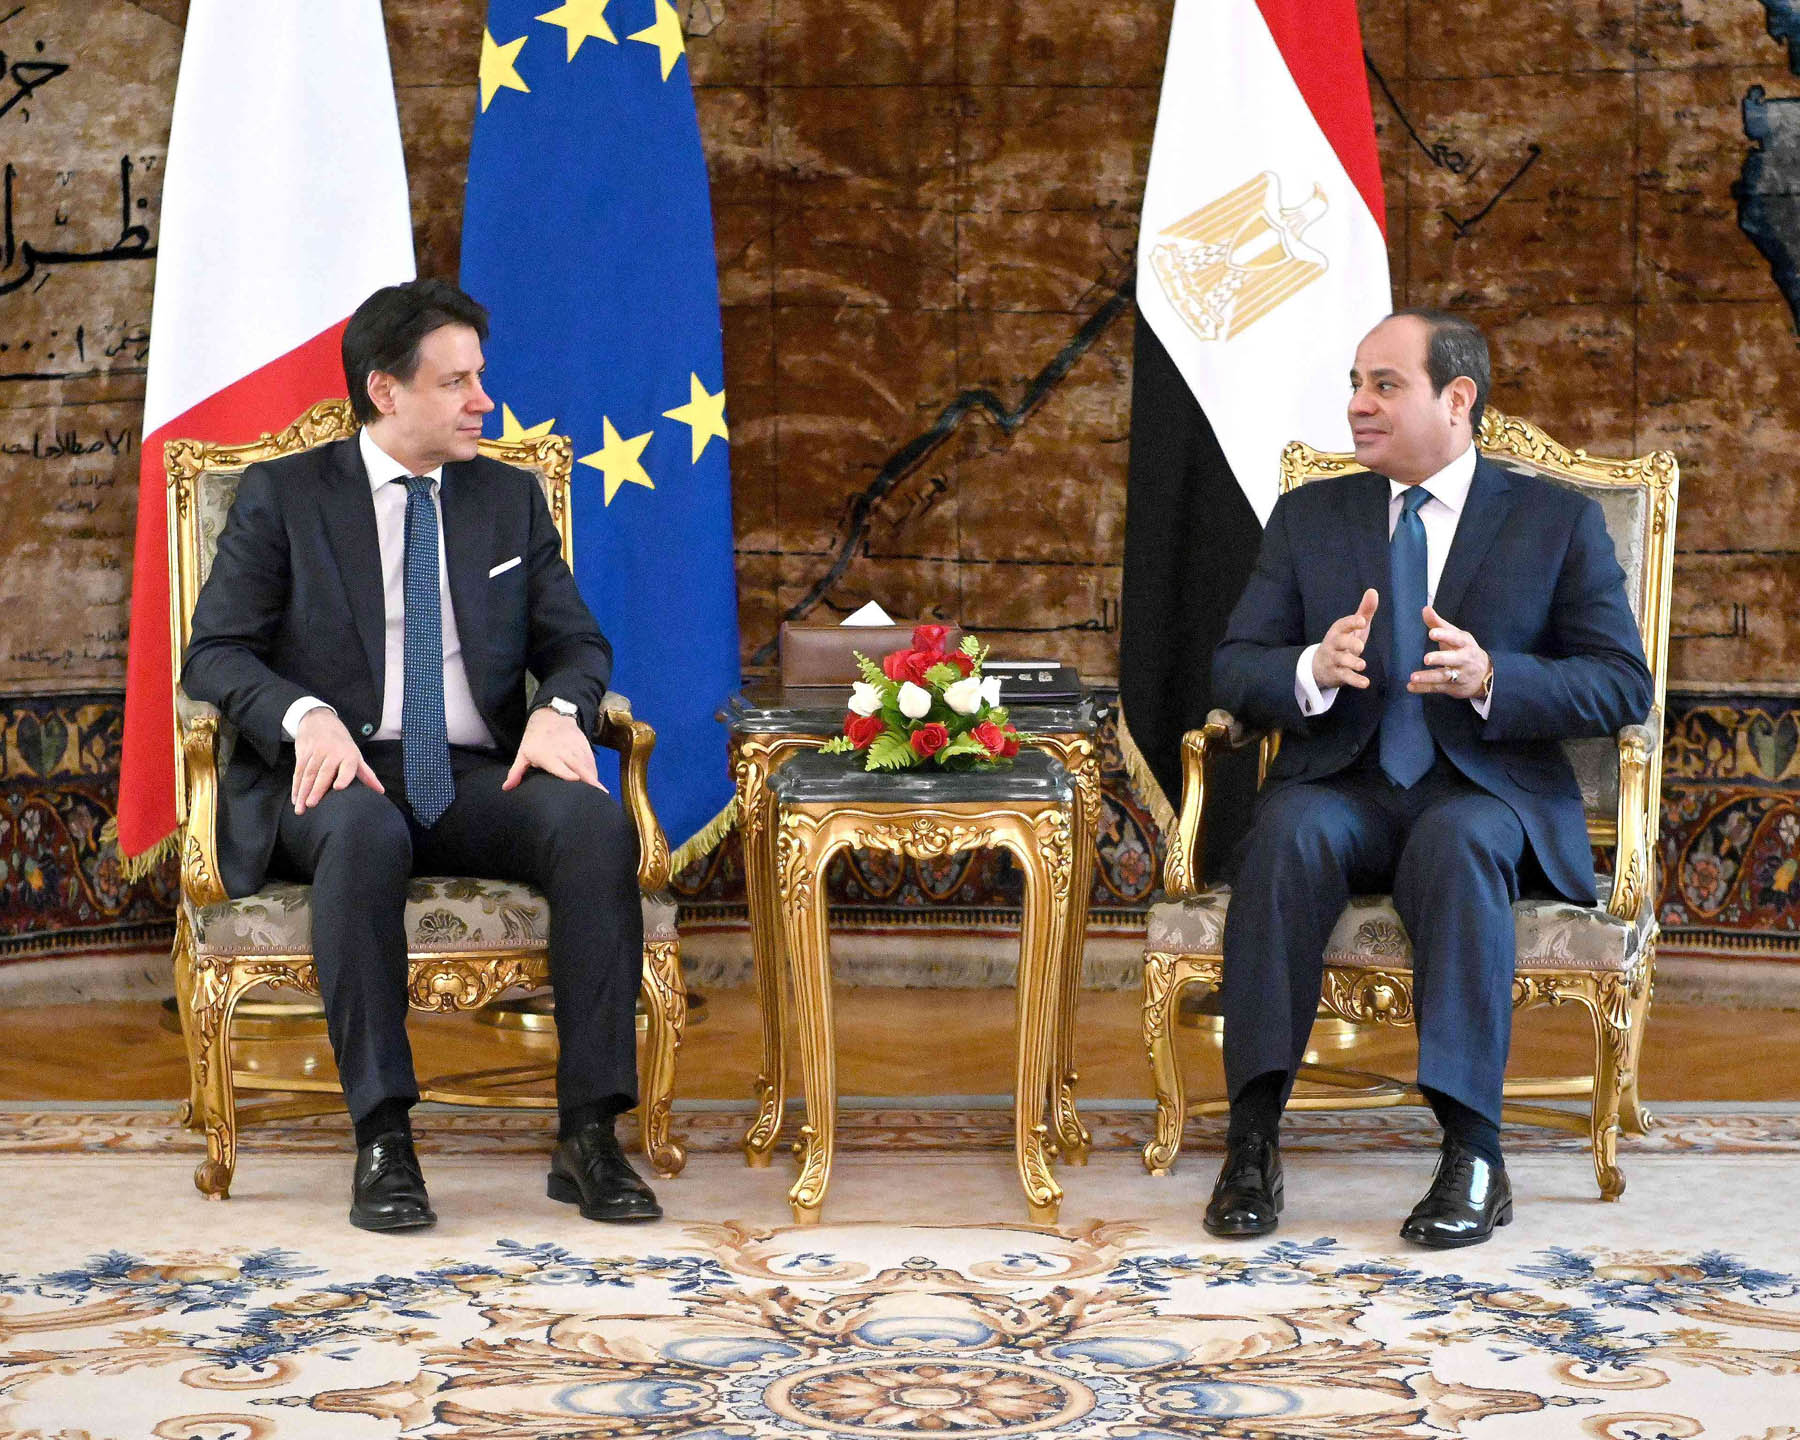 A handout picture released by the Egyptian Presidency shows Egyptian President Abdel Fattah al-Sisi (R) during his meeting Italian Prime Minister Giuseppe Conti at the presidential palace in the Egyptian capital Cairo on January 14. (AFP)